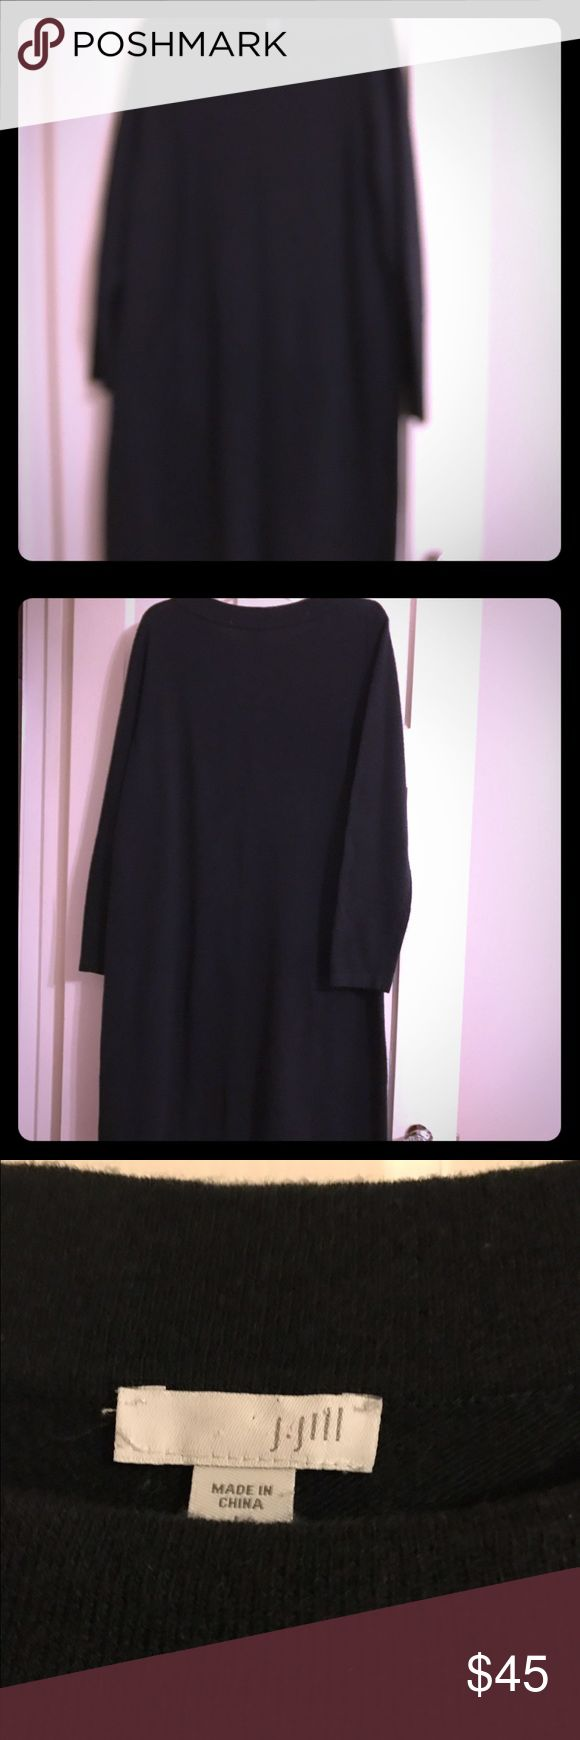 JJill black wool sweater dress. JJill black knee length long sleeve sweater dress with front slit pockets. Only worn a couple times. J. Jill Dresses Long Sleeve